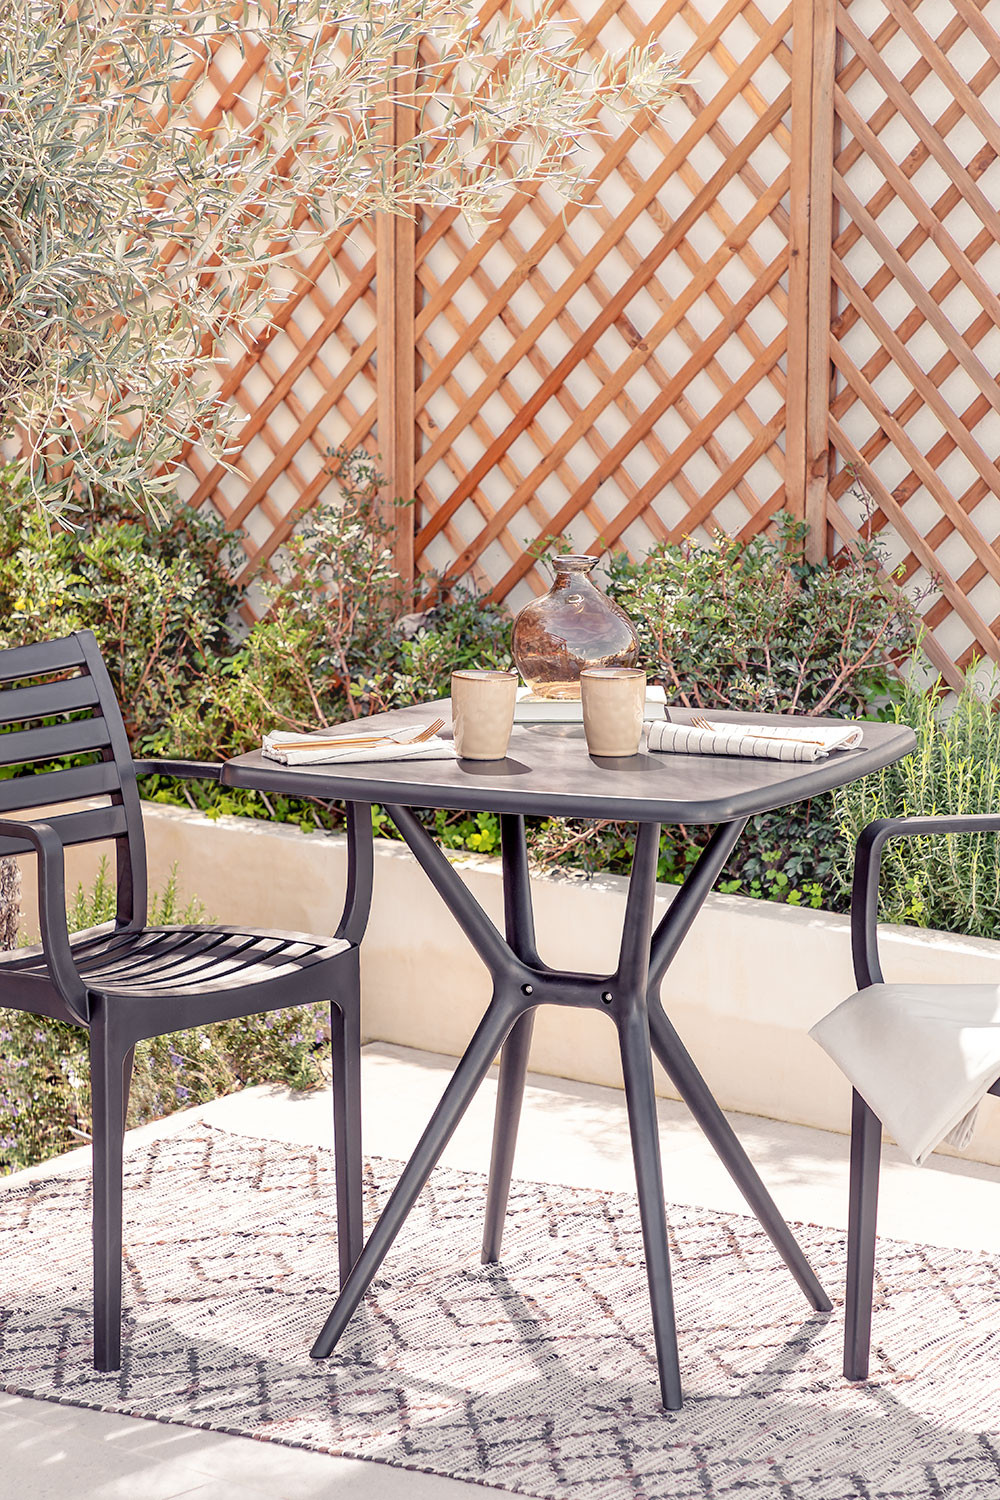 square outdoor table 72x72 cm enno